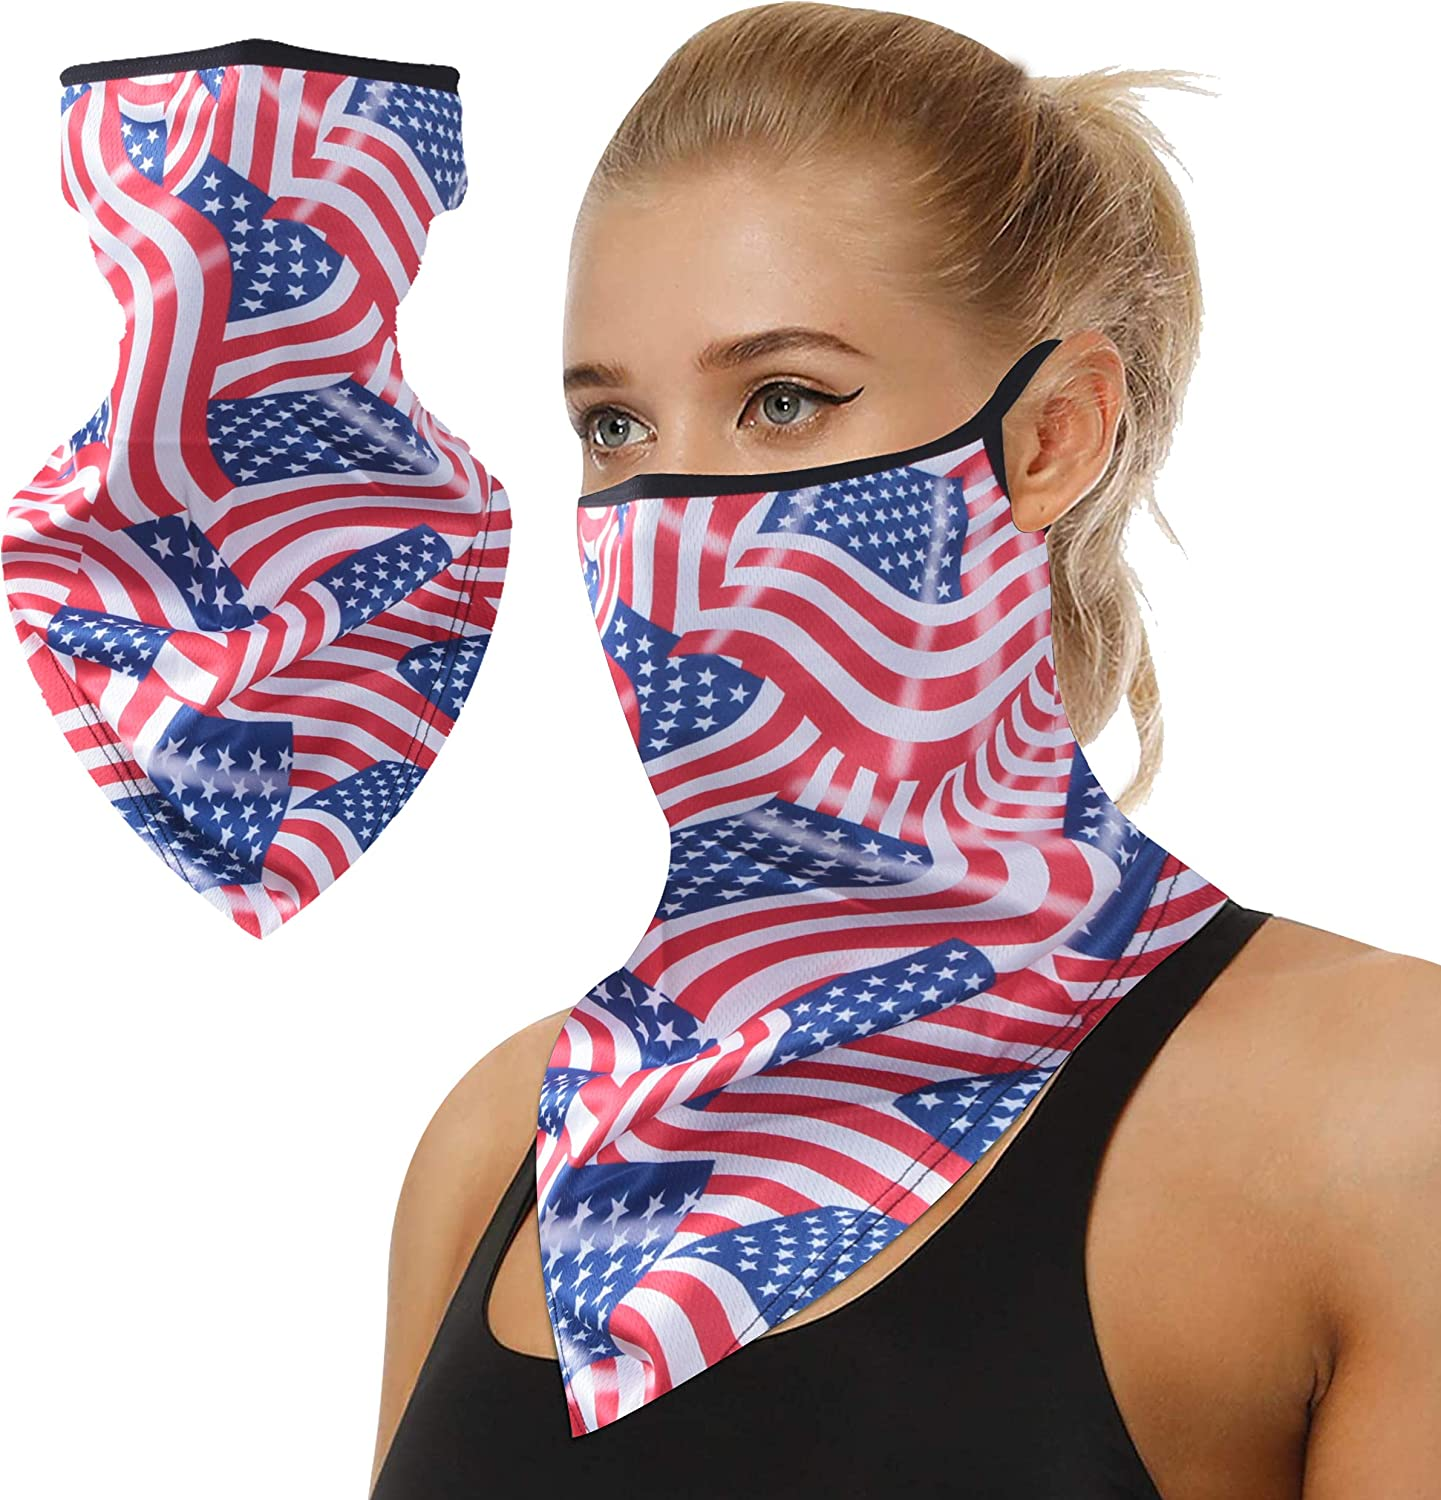 Bun Large Summer Neck Gaiter with Ear Loops, US Flag Face Mask 50+ UV Protection Neck Gaiter Sunproof Scarf for Fishing Hunting Kayaking Hiking Cycling Sports Outdoors 1 Pack, Red Blue Flag